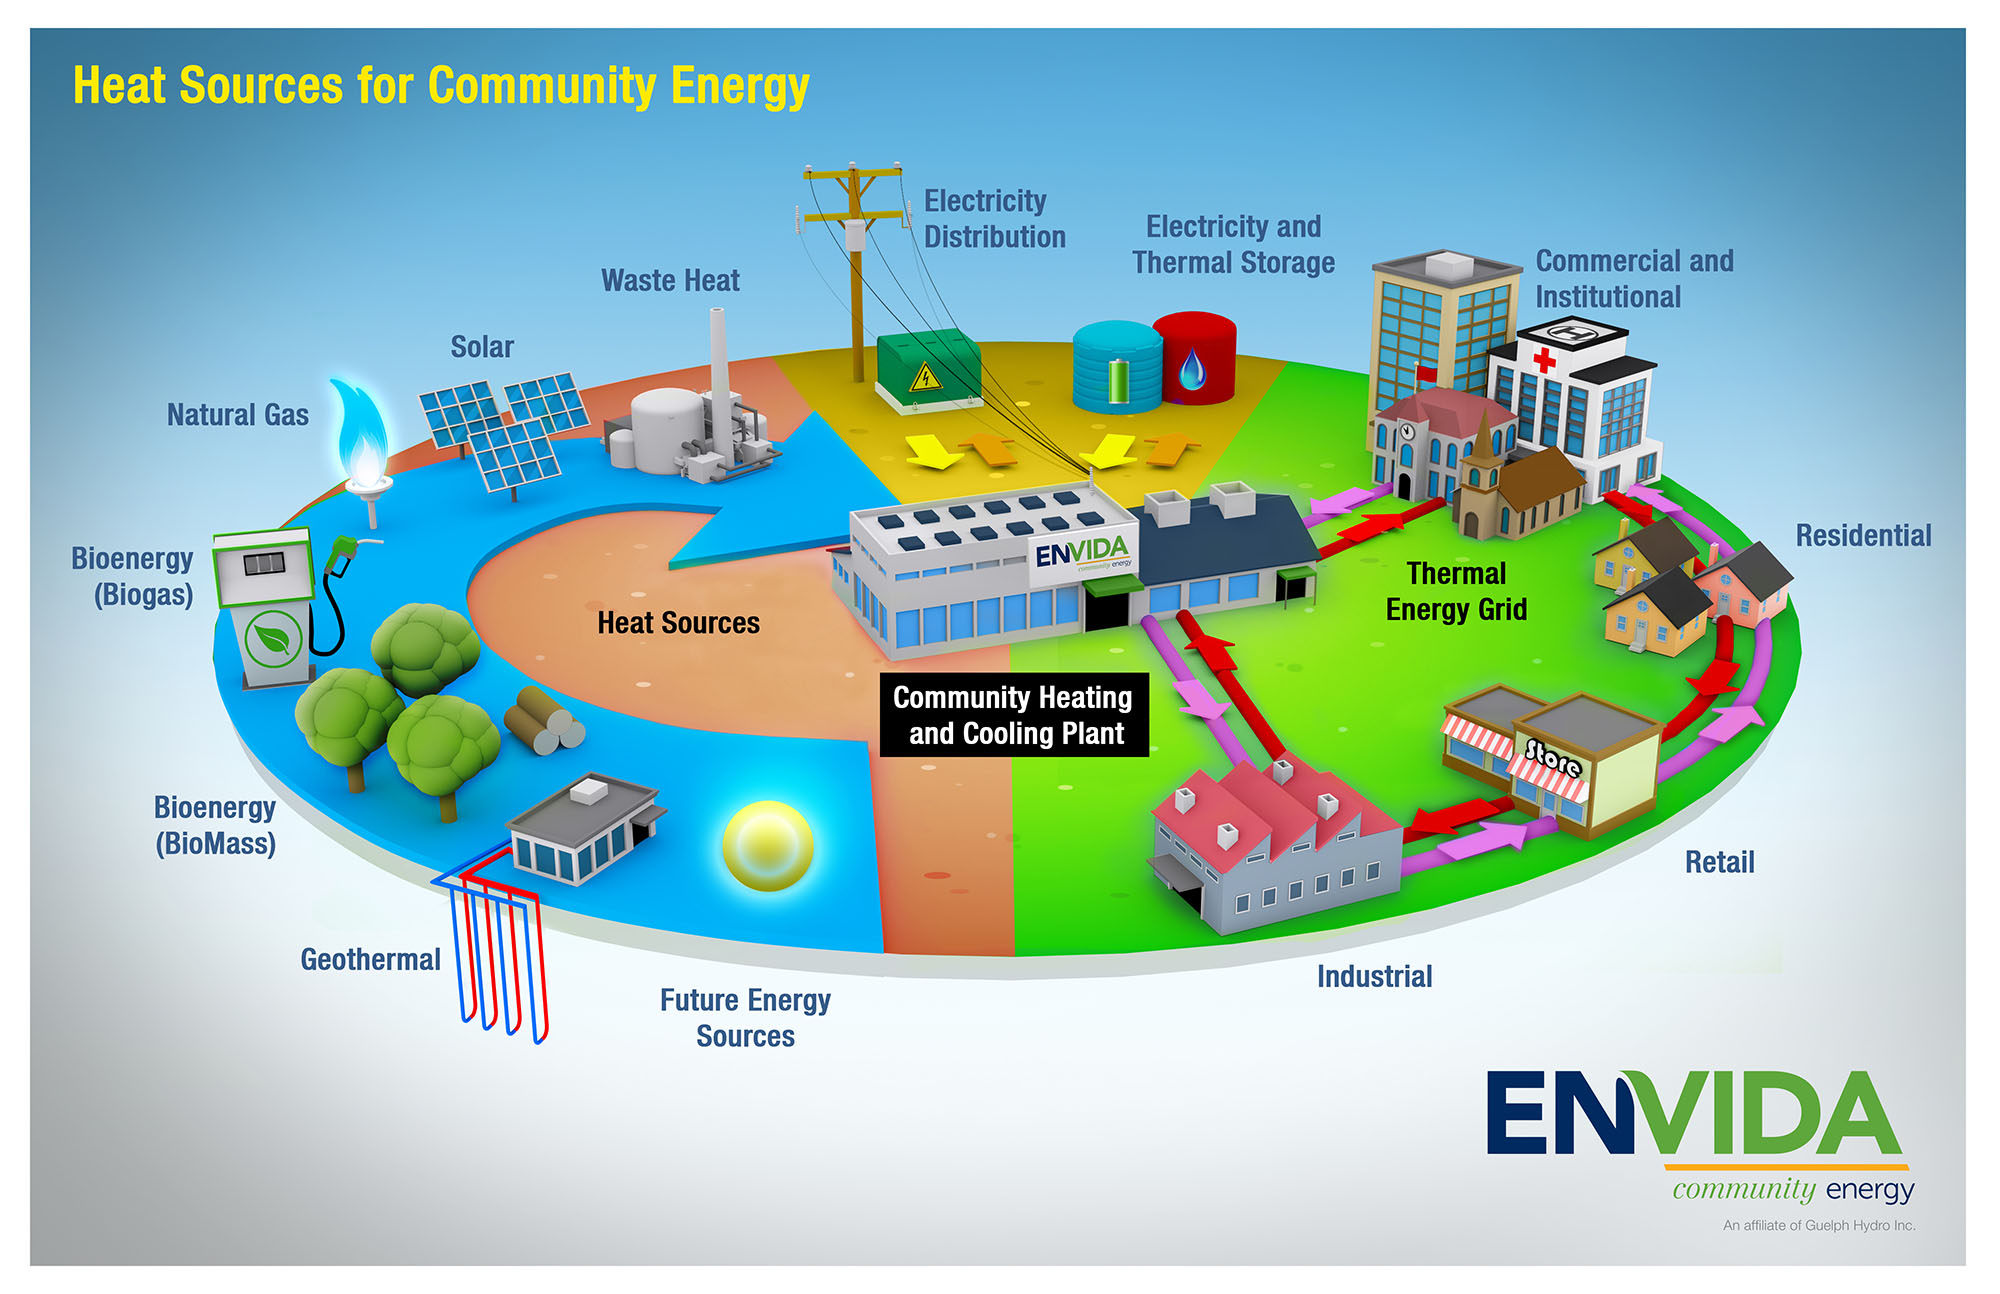 Ontario Climate Action: North America's First City-wide District Energy Network - in Guelph